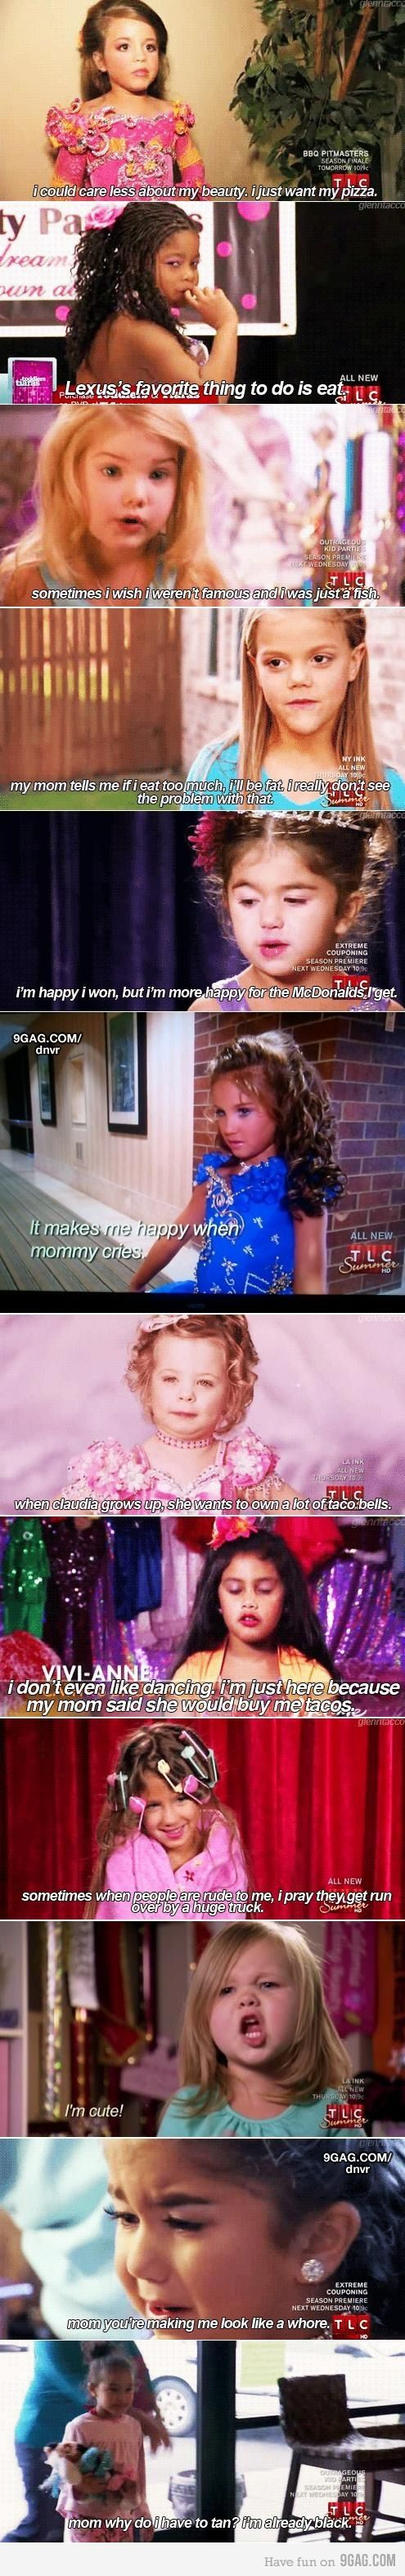 lol: Little Girls, Poor Girls, Giggle, Taco Bell, Funny Stuff, Dance Moms, So Funny